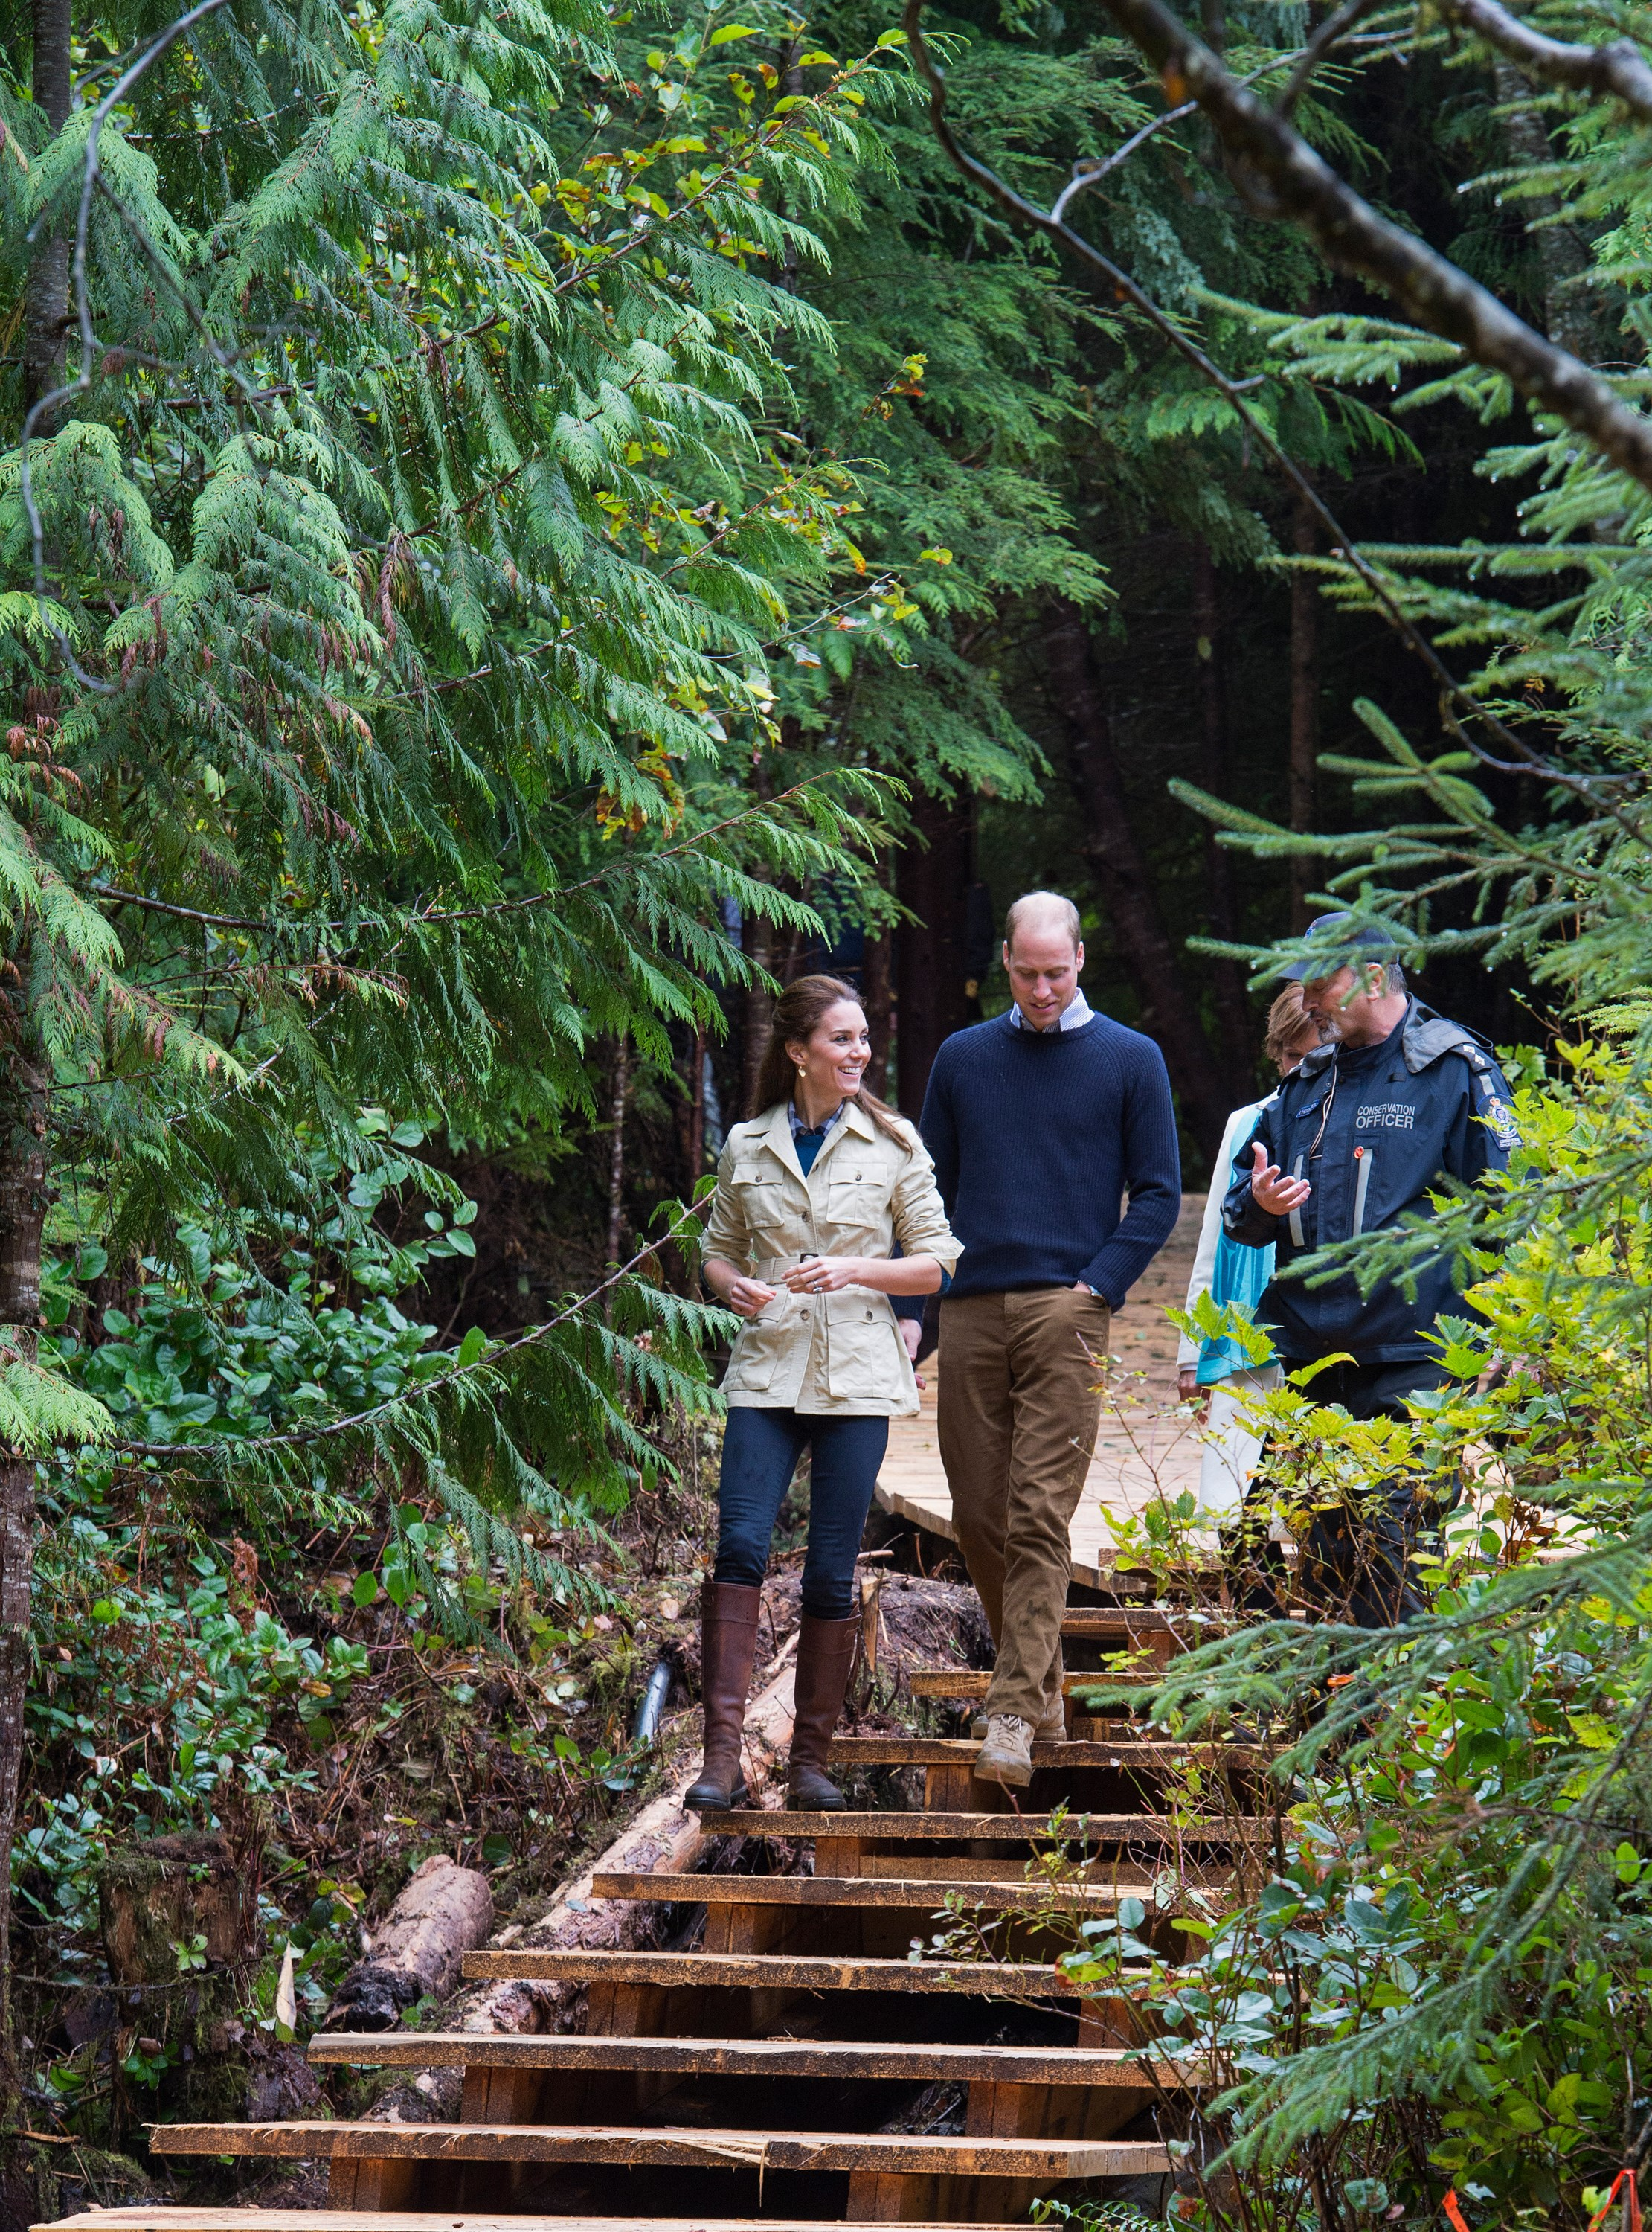 The Duke and Duchess spent a day exploring the natural beauty of Canada's Great Bear Rainforest, and Catherine looked just the part. Wearing jeans from Zara, her trusted Penelope Chilvers boots and a Holland & Holland safari jacket, she chatted animatedly about her surroundings.